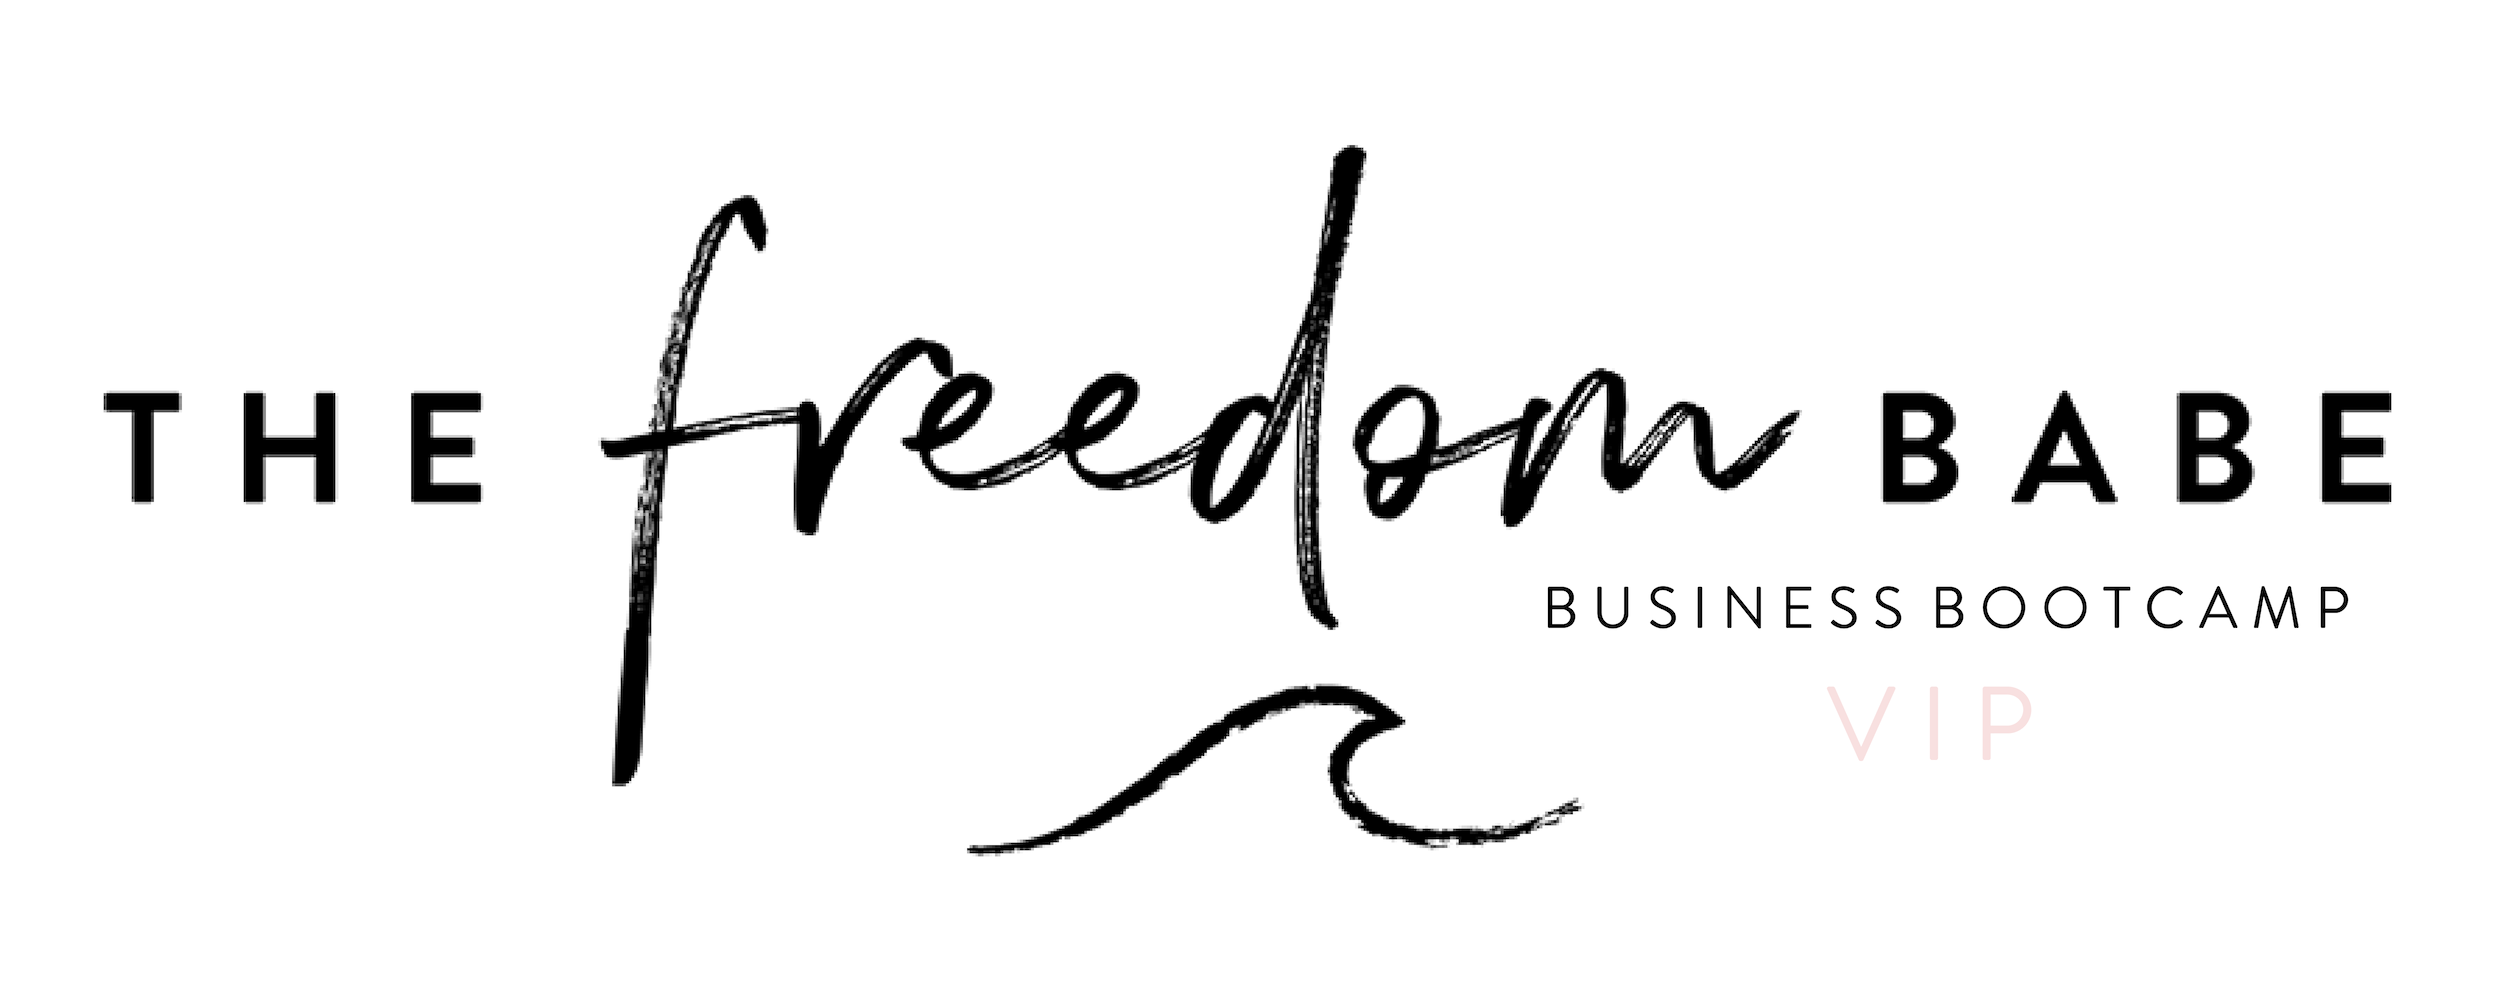 the freedom babe business bootcamp.png